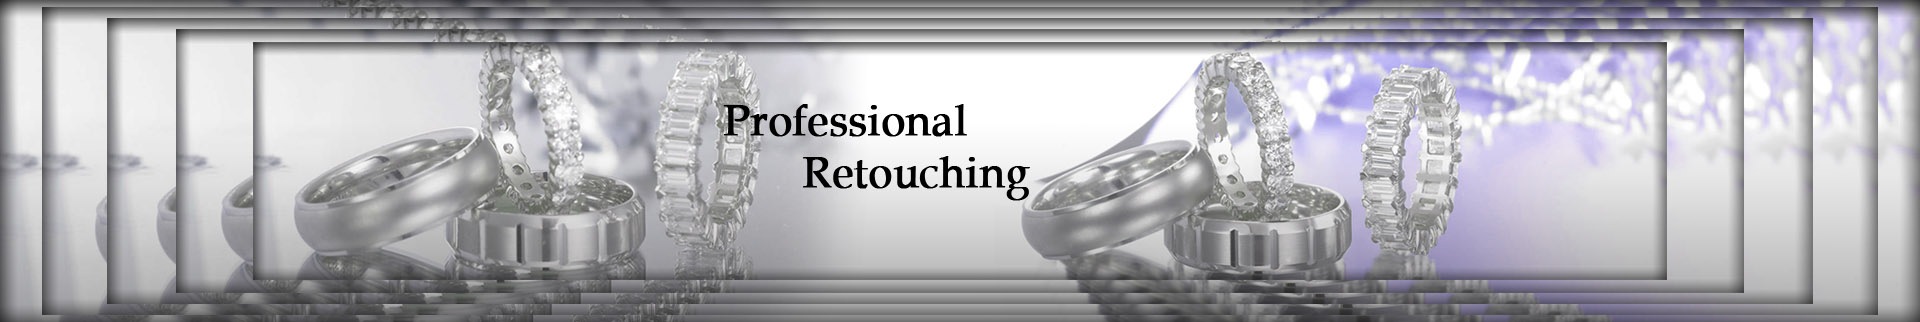 Jewelry Photo Editing Retouching Services|Starting at $1/Image